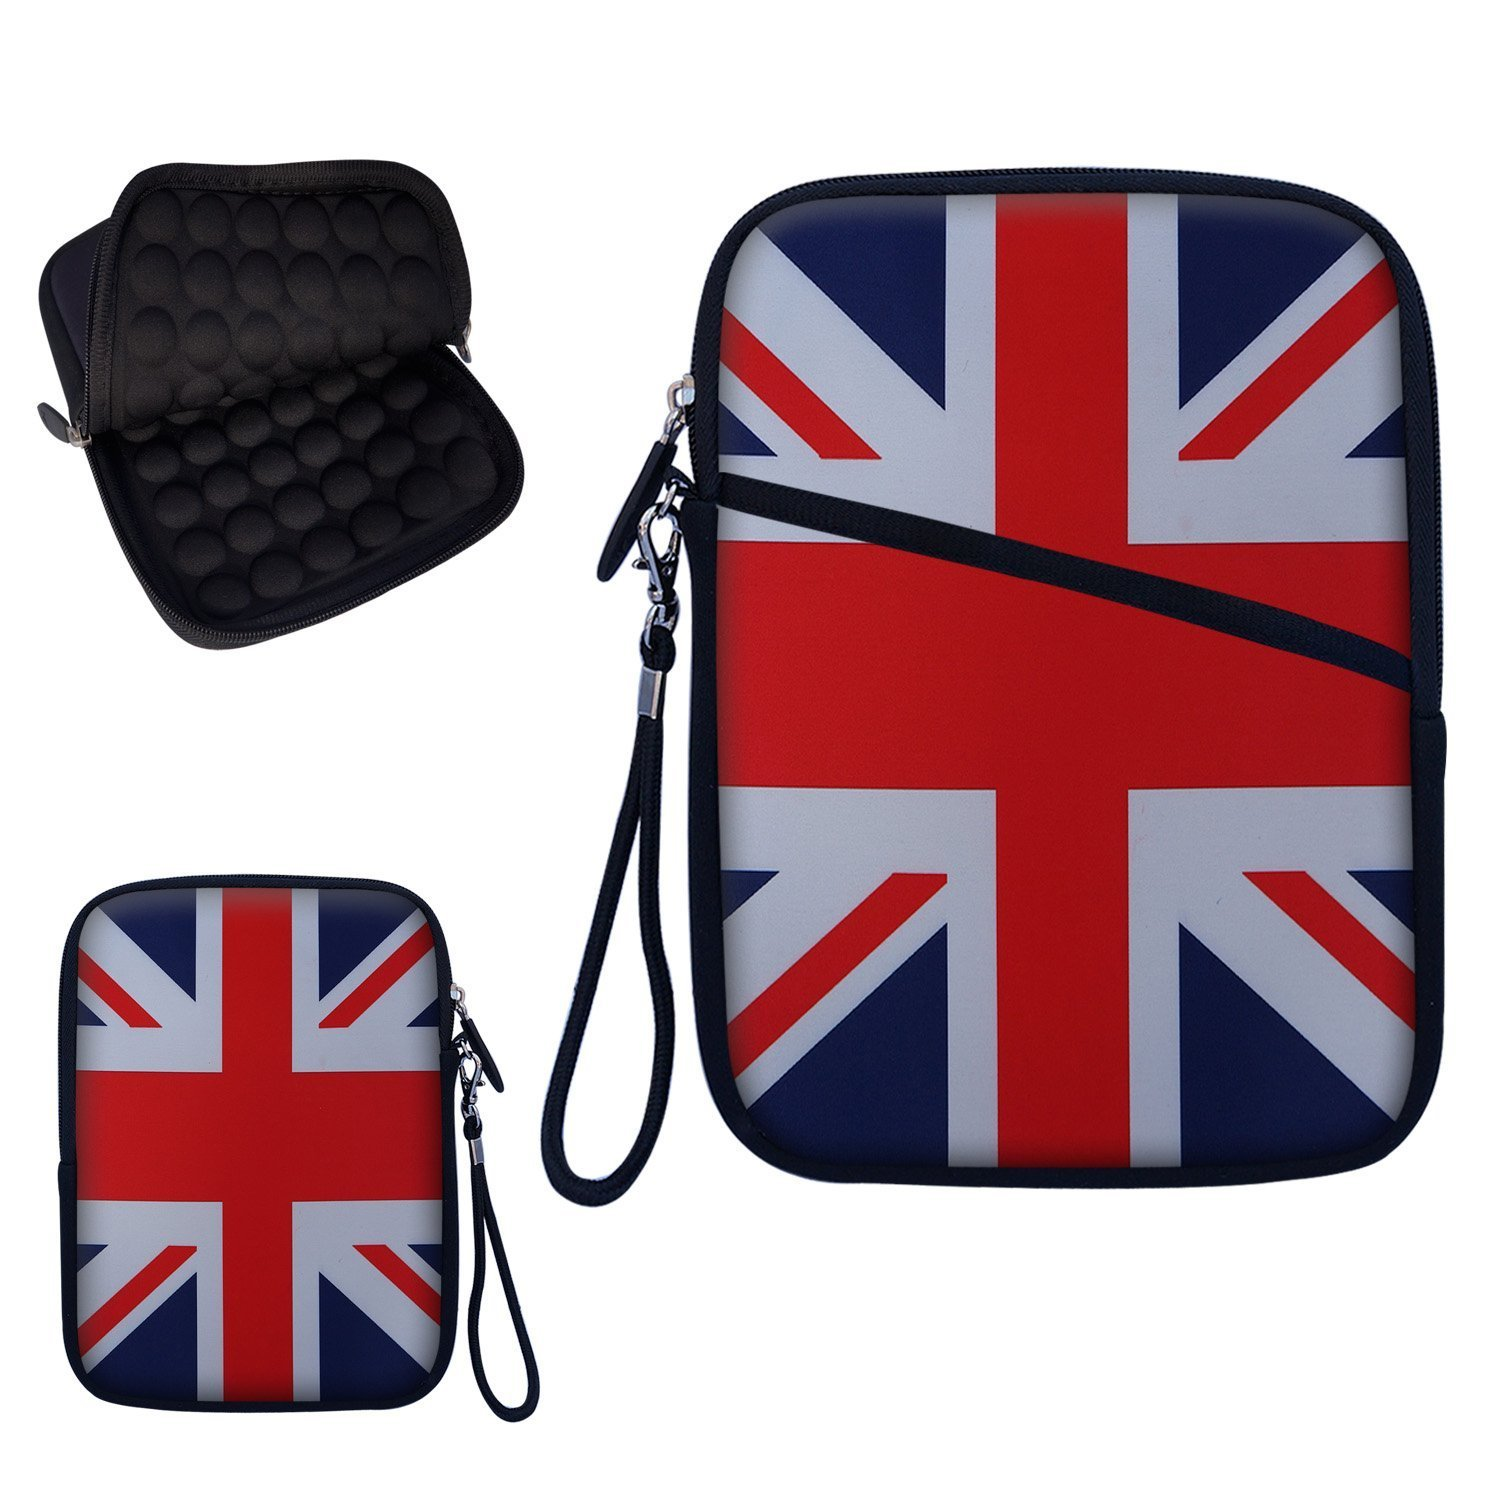 """Neoprene Super Padded Bubble Sleeve Case Cover with Removable Carrying Handle Fits Apple iPad Mini / Amazon Kindle Fire HD / Google Nexus 7 / Samsung Galaxy / Asus / Acer / Archos and Similar Size 7"""" Tablet - England Flag Design"""